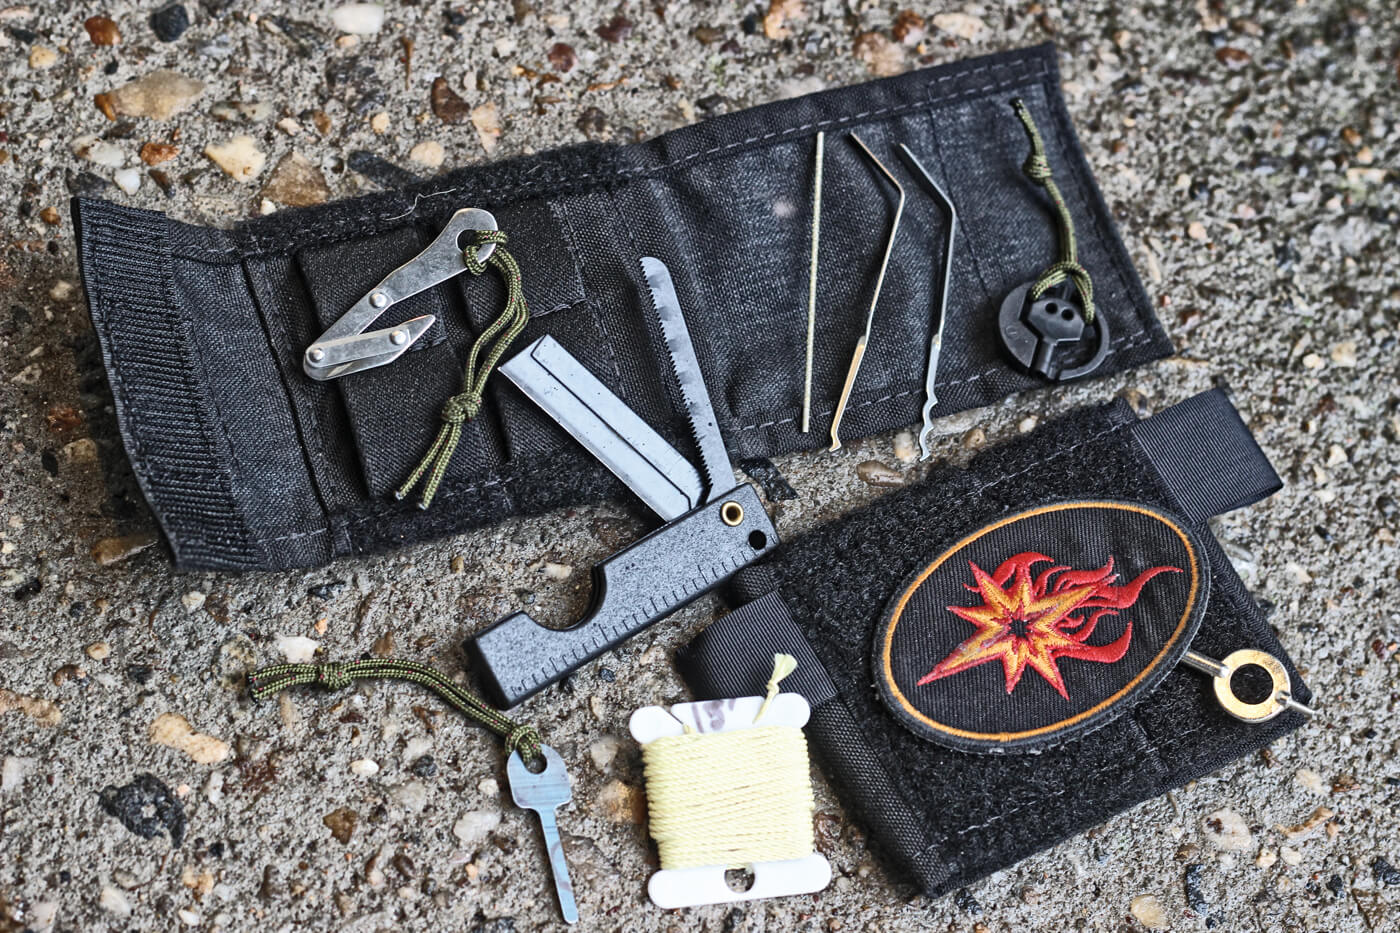 Center Line Systems KeyDC with folding knives, handcuff keys, lockpicks and paracord